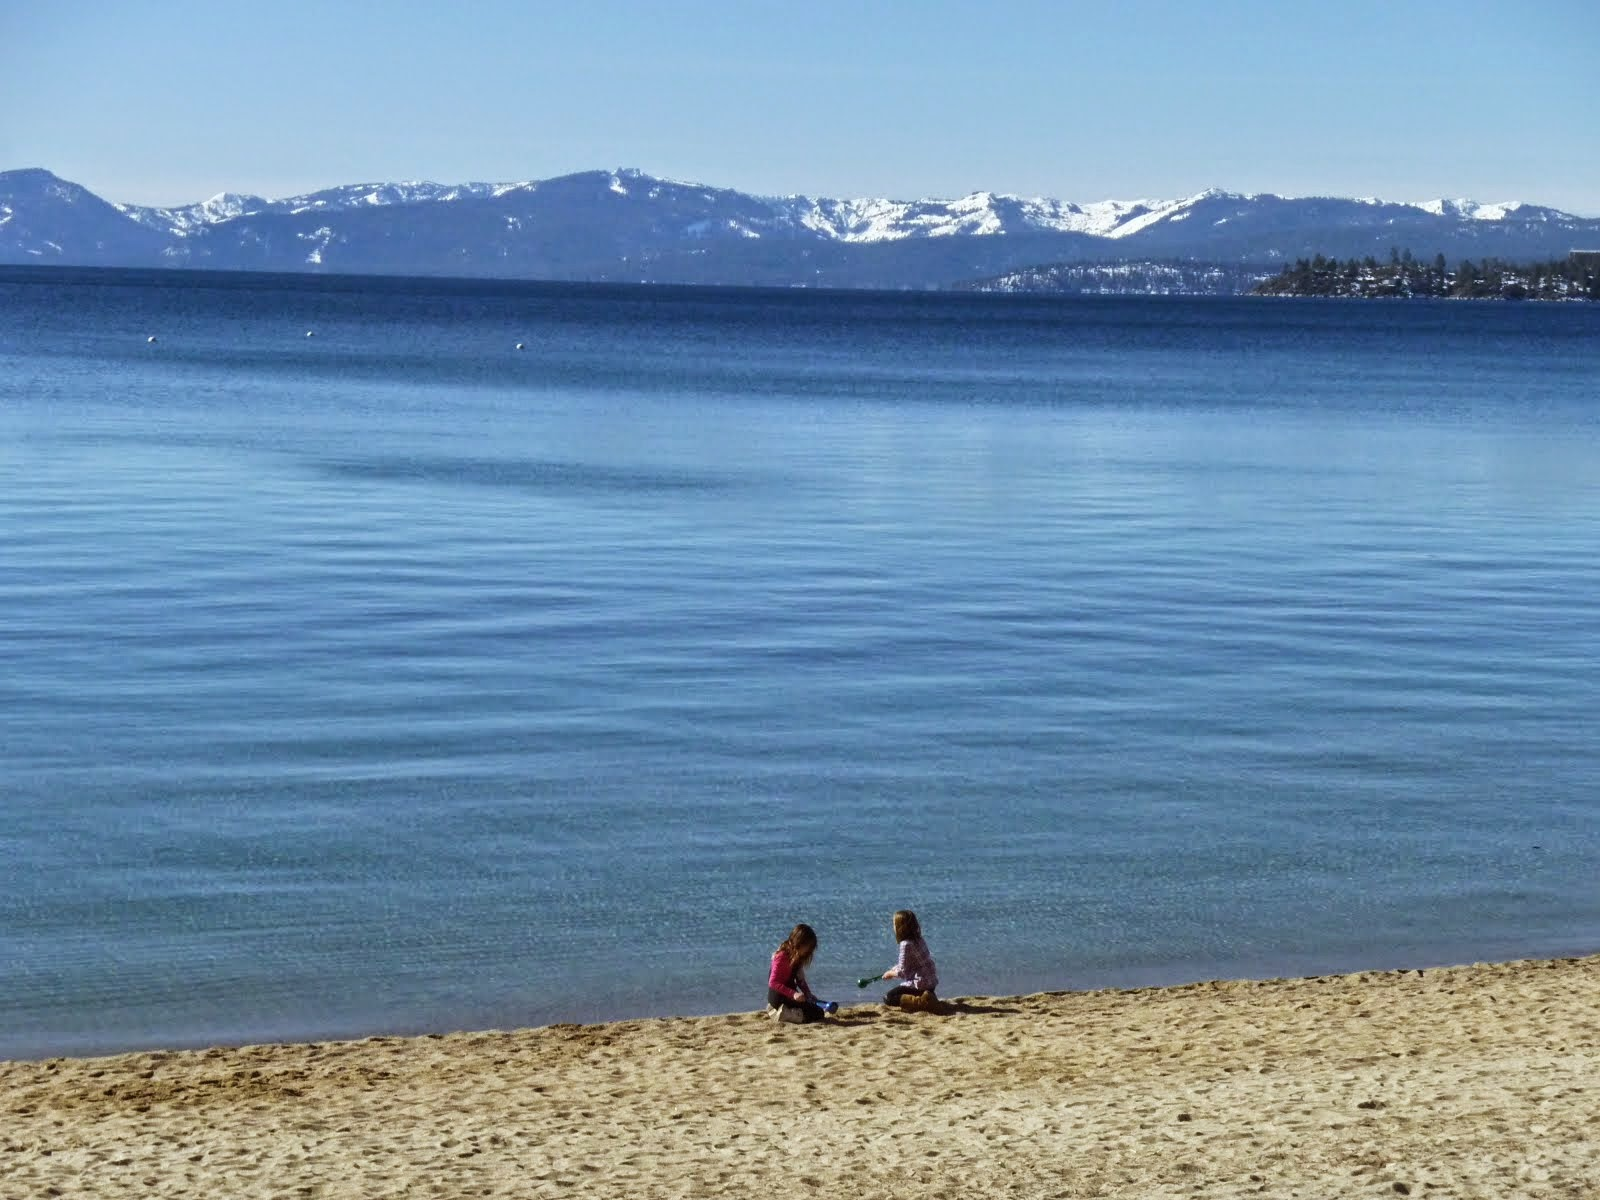 OFFICE: LAKE TAHOE, 954 LAKESHORE, INCLINE VILLAGE, NEVADA 89451